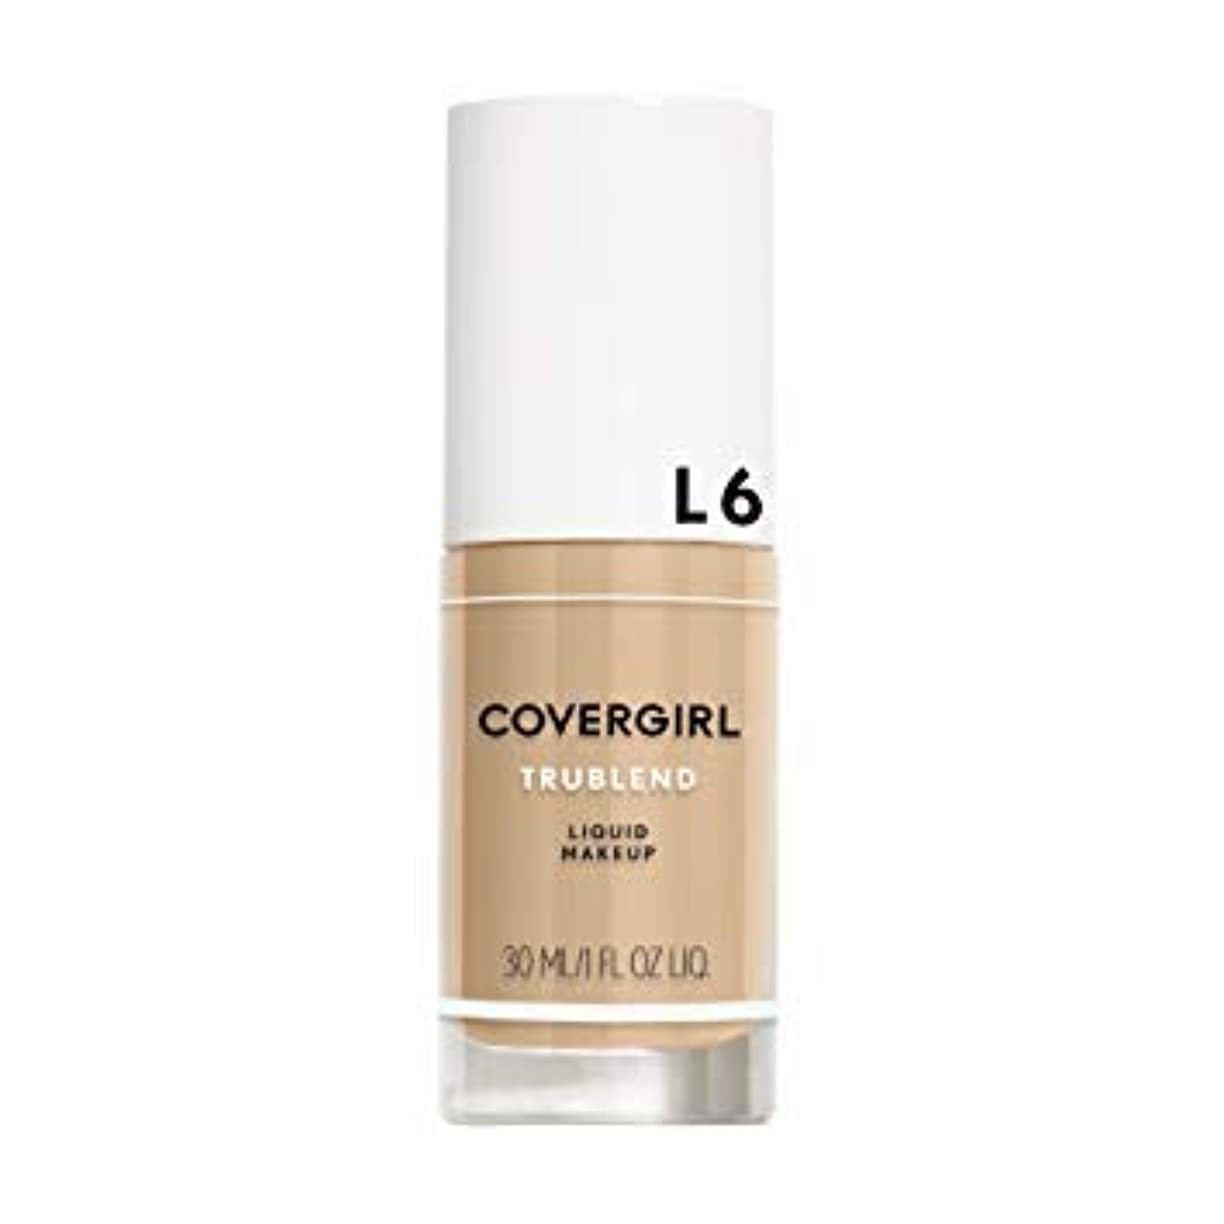 トラック実際にセンサー(3 Pack) COVERGIRL TruBlend Liquid Makeup - Buff Beige L6 (並行輸入品)